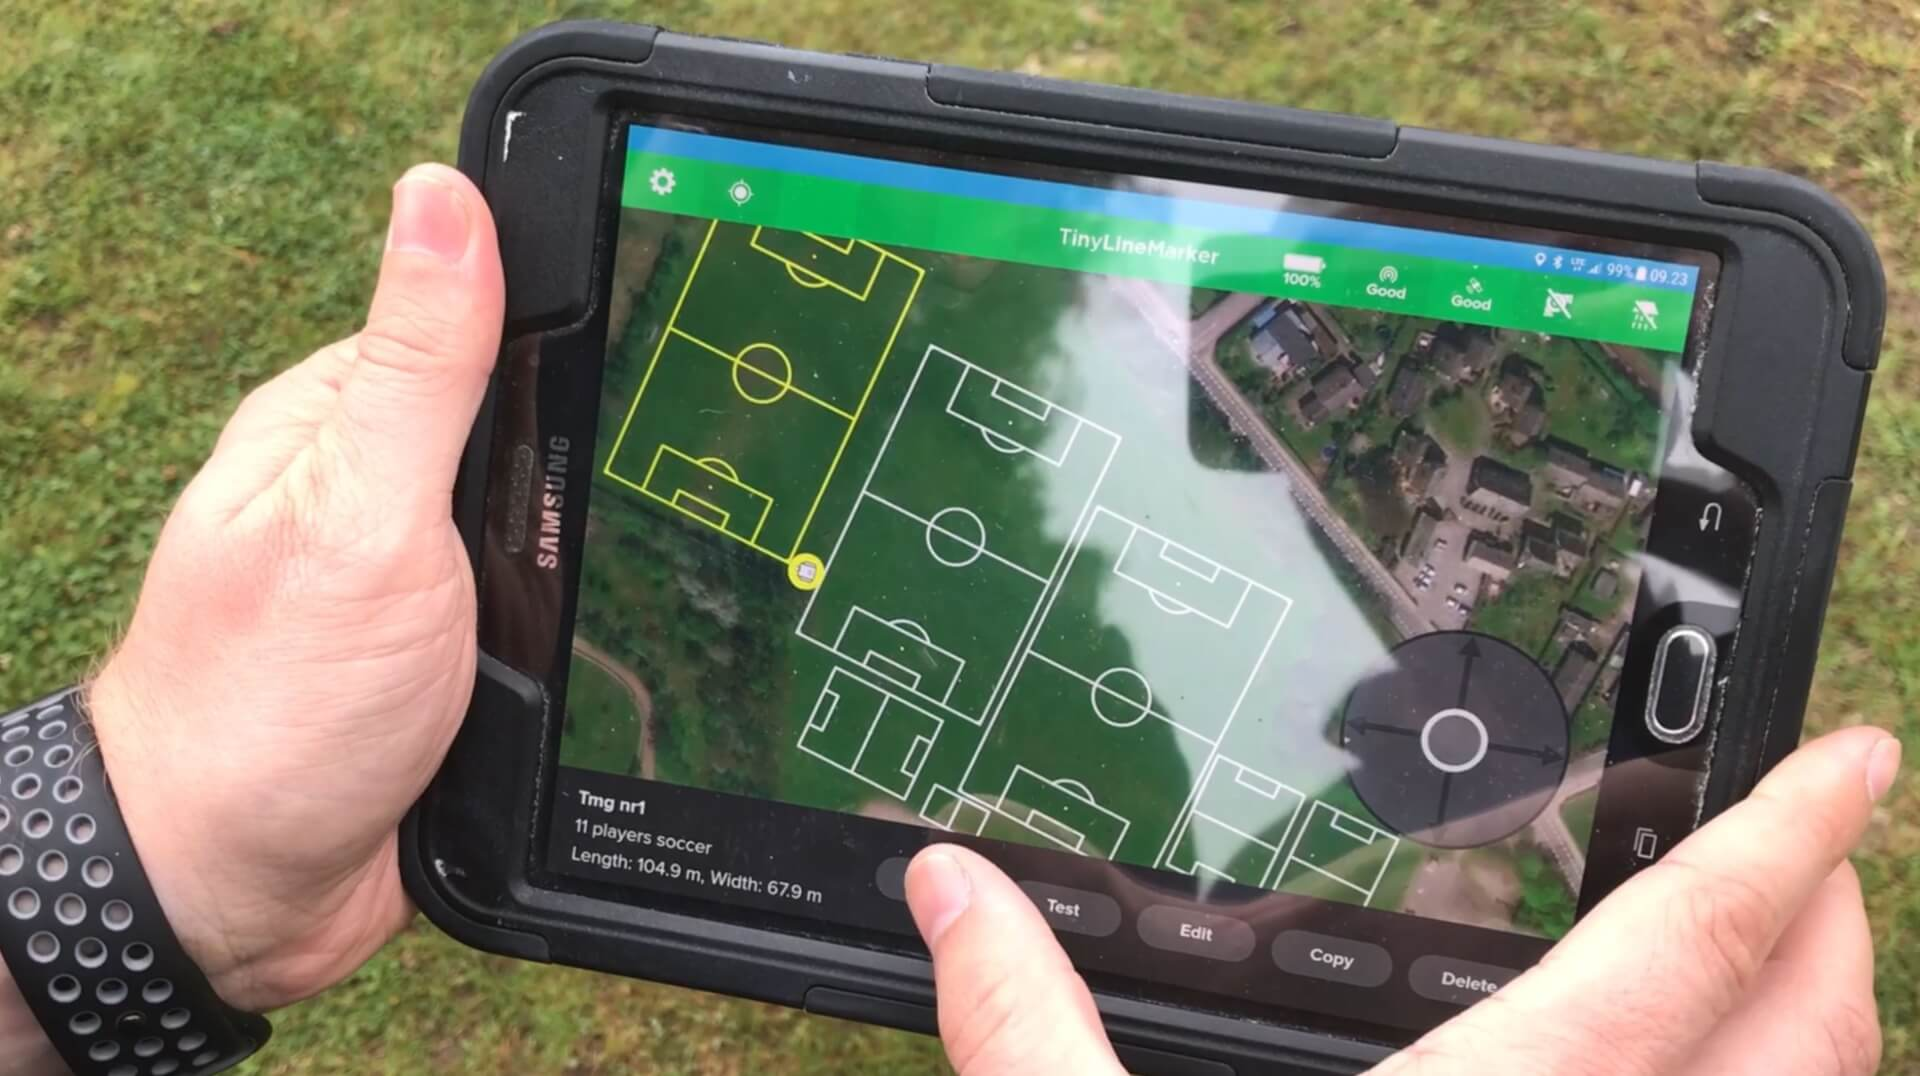 User-friendly tablet interface for robot sports line marking